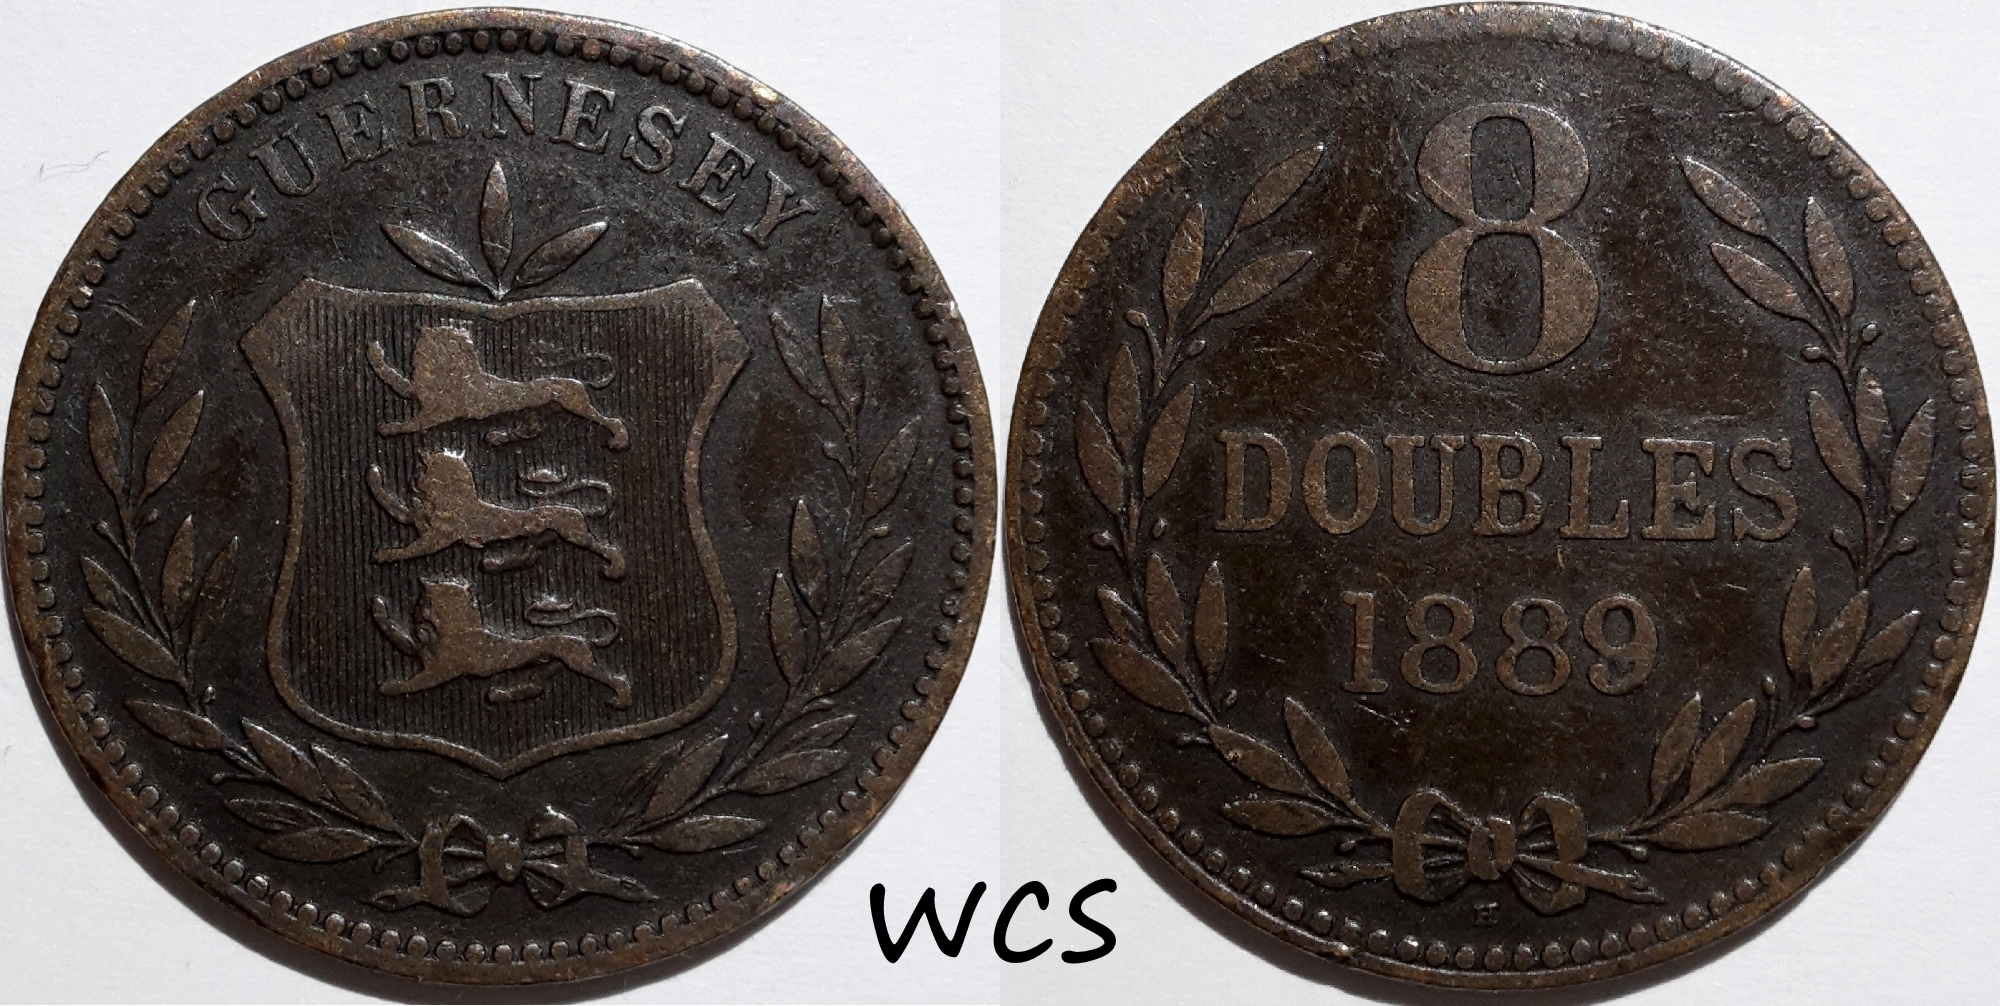 new Coins 02.2021